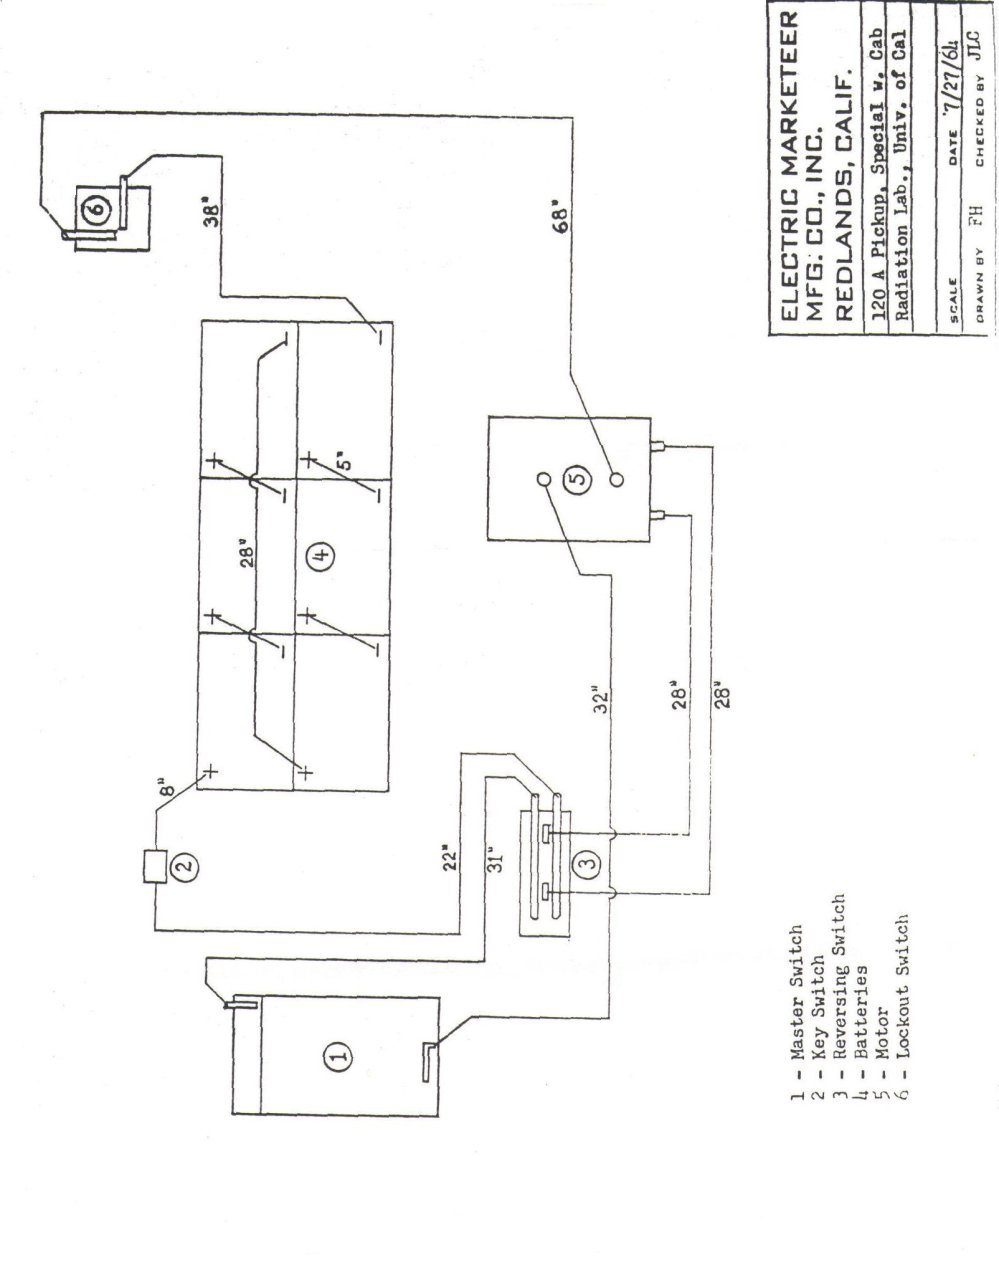 medium resolution of melex electric golf cart 6 volt wiring diagram